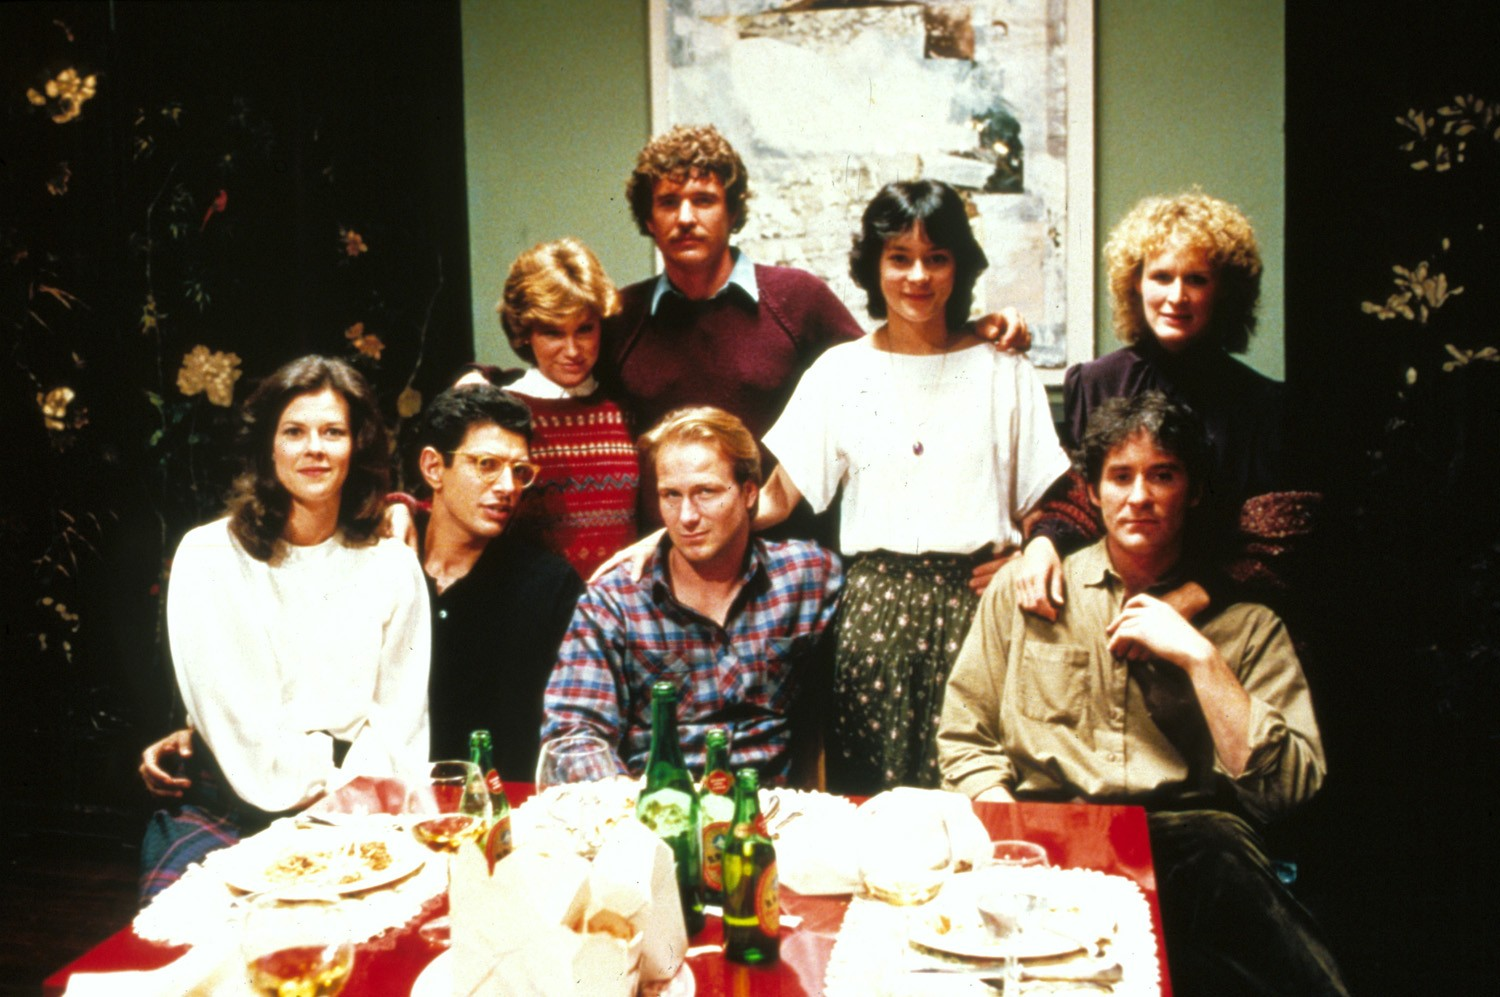 Glenn Close,Jeff Goldblum,JoBeth Williams,Kevin Kline,Mary Kay Place,Meg Tilly,Tom Berenger,William Hurt